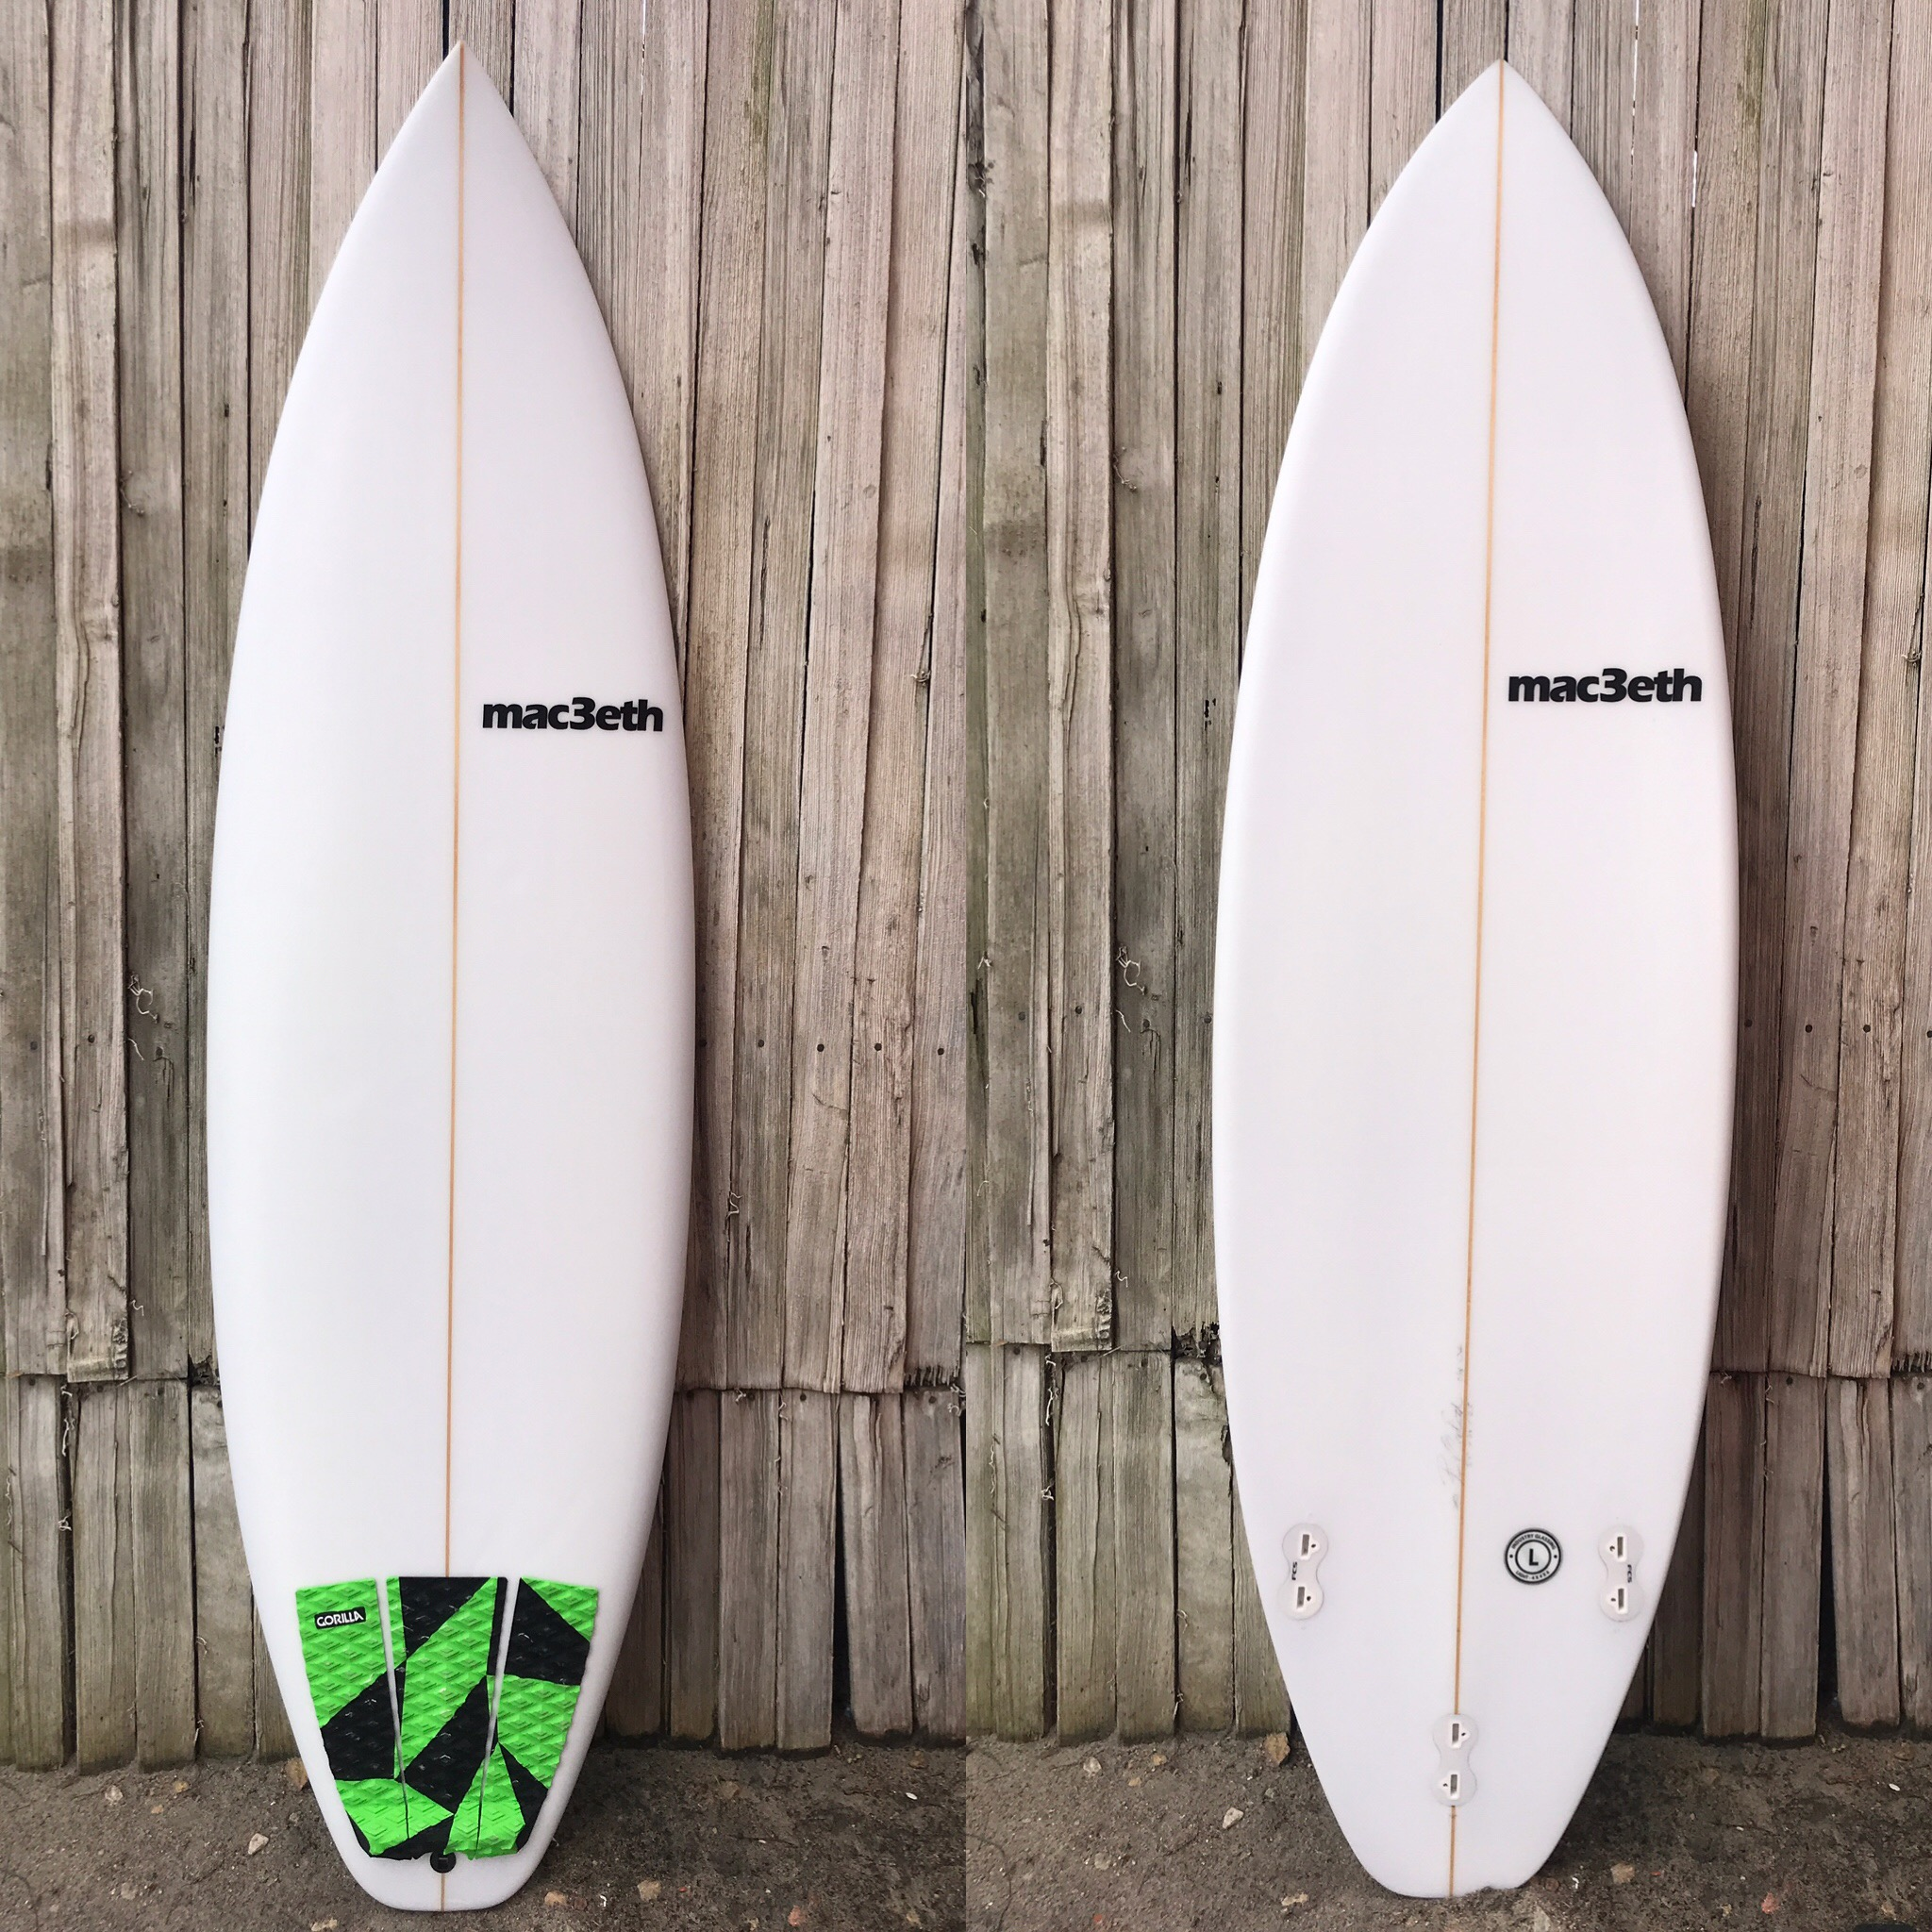 6'1 Macbeth shortboard